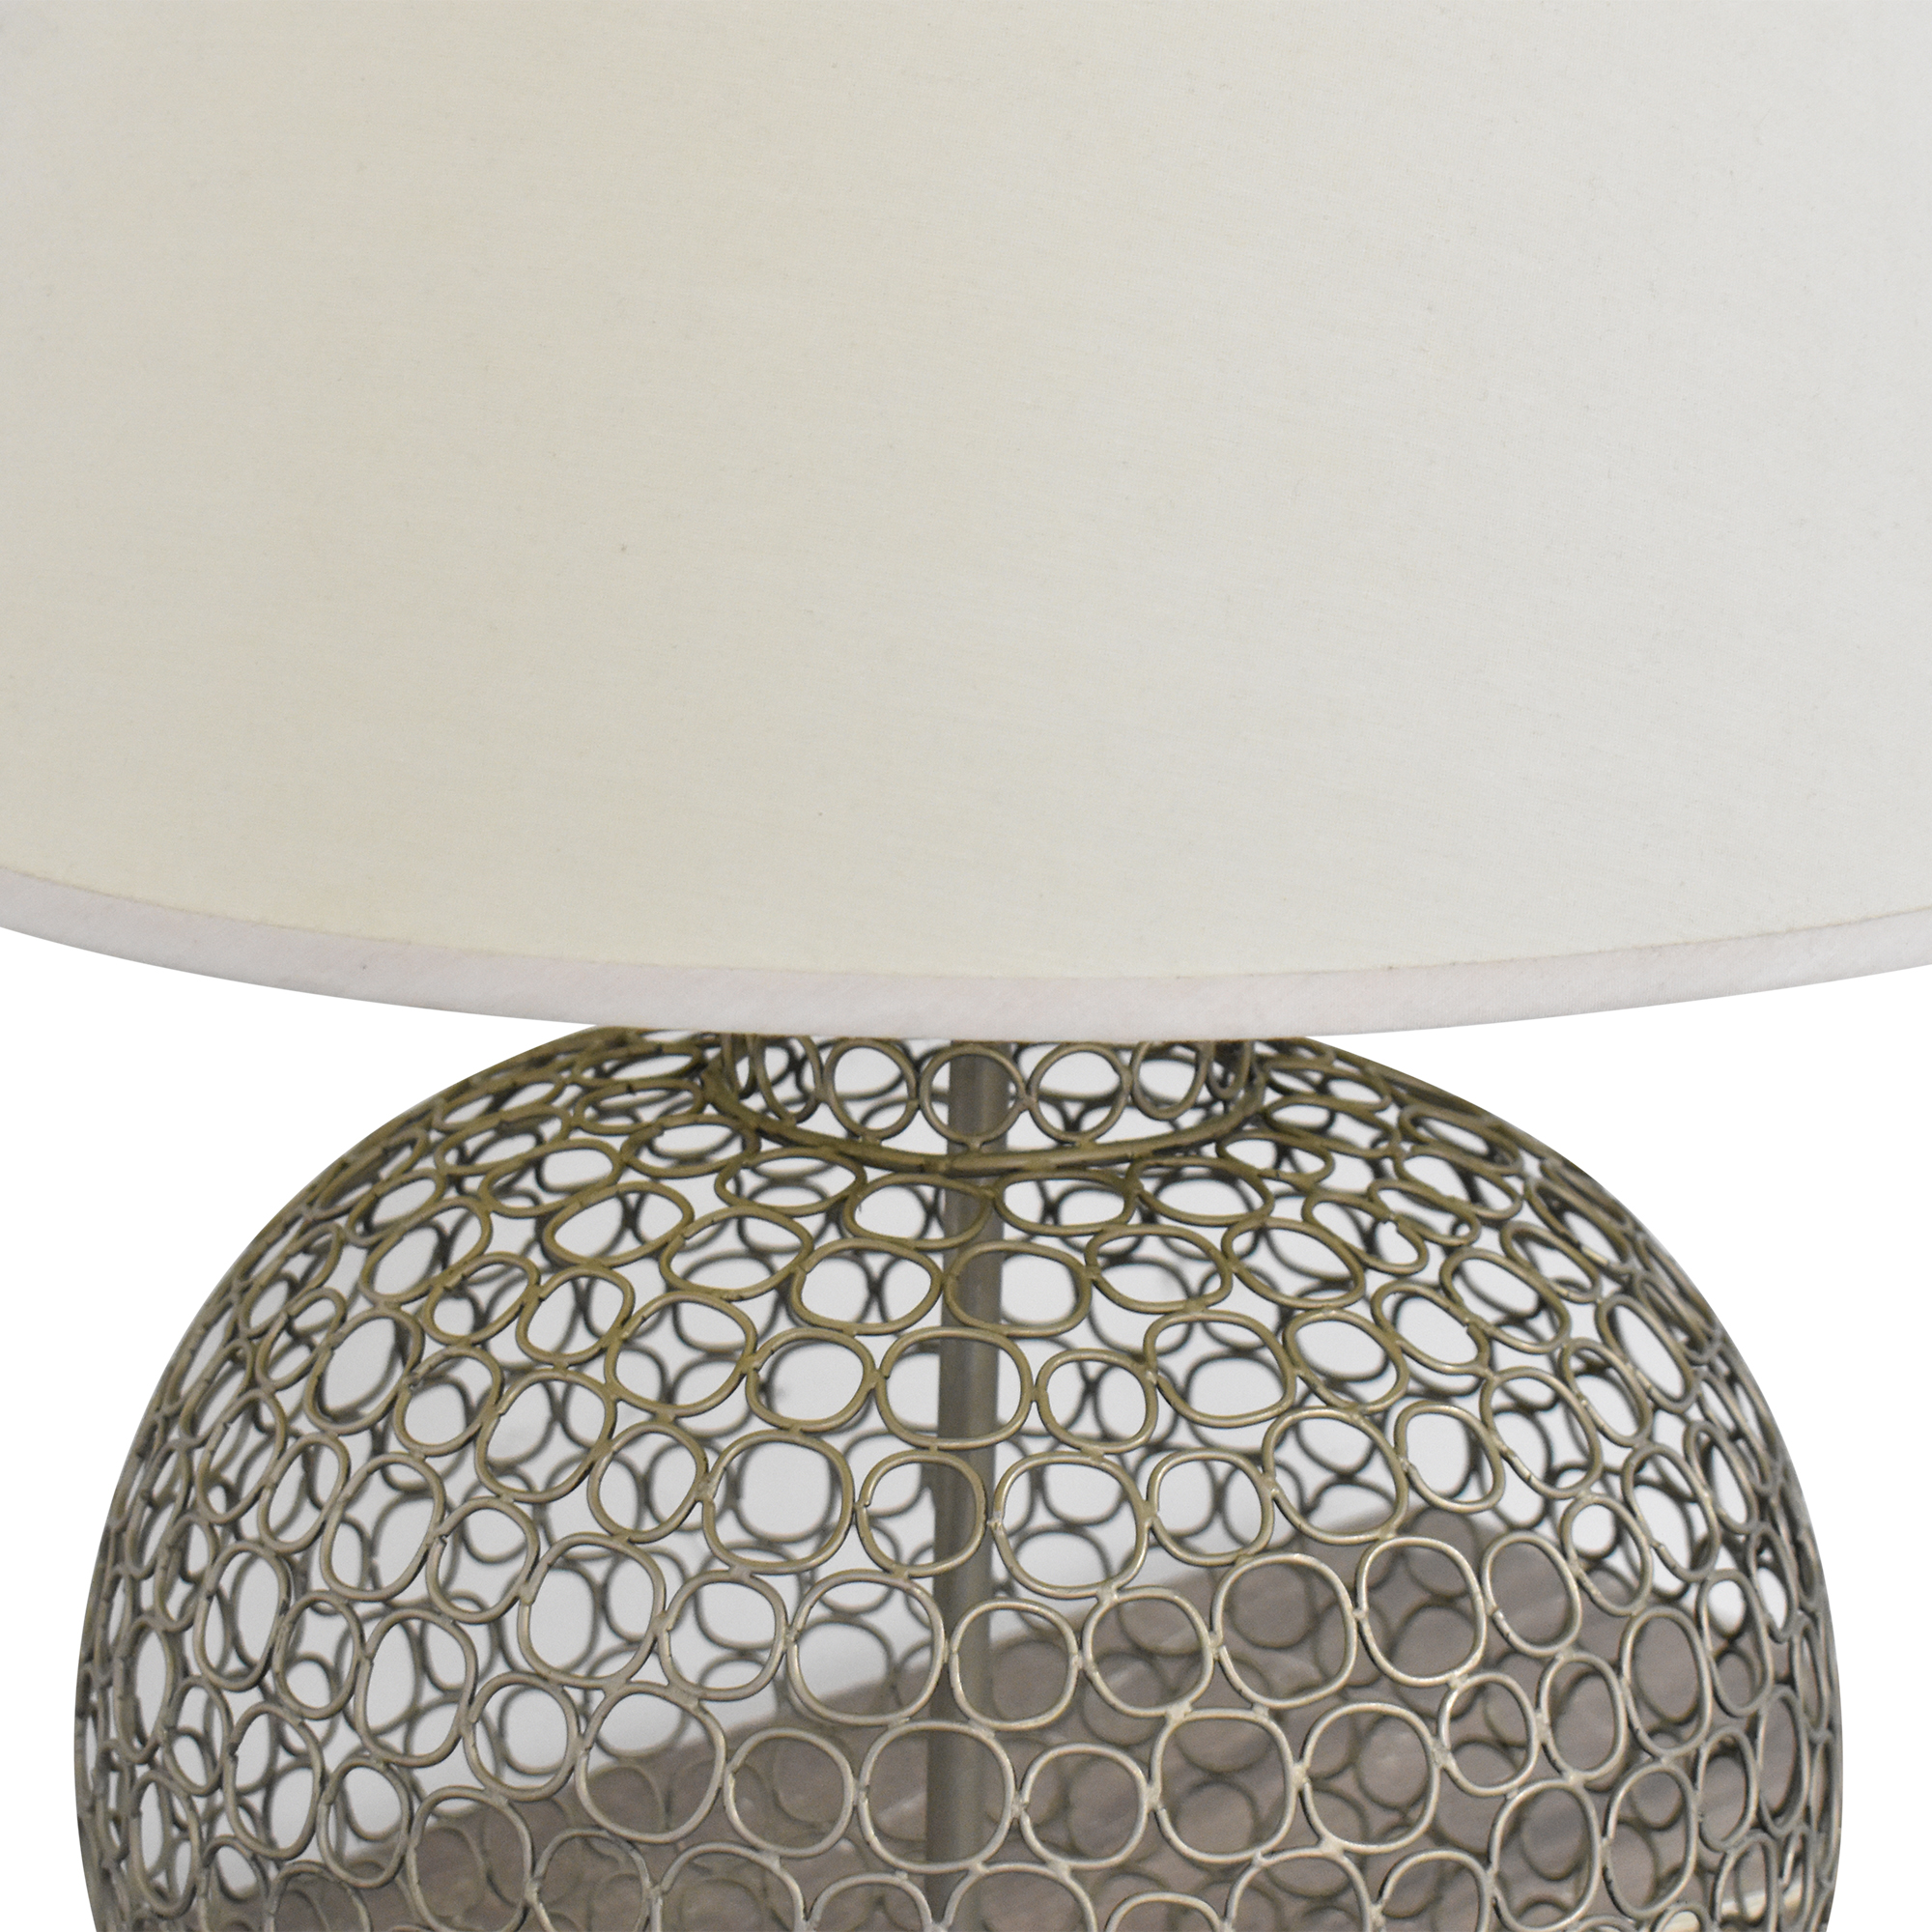 buy Ethan Allen Openweave Nickel Table Lamp Ethan Allen Decor